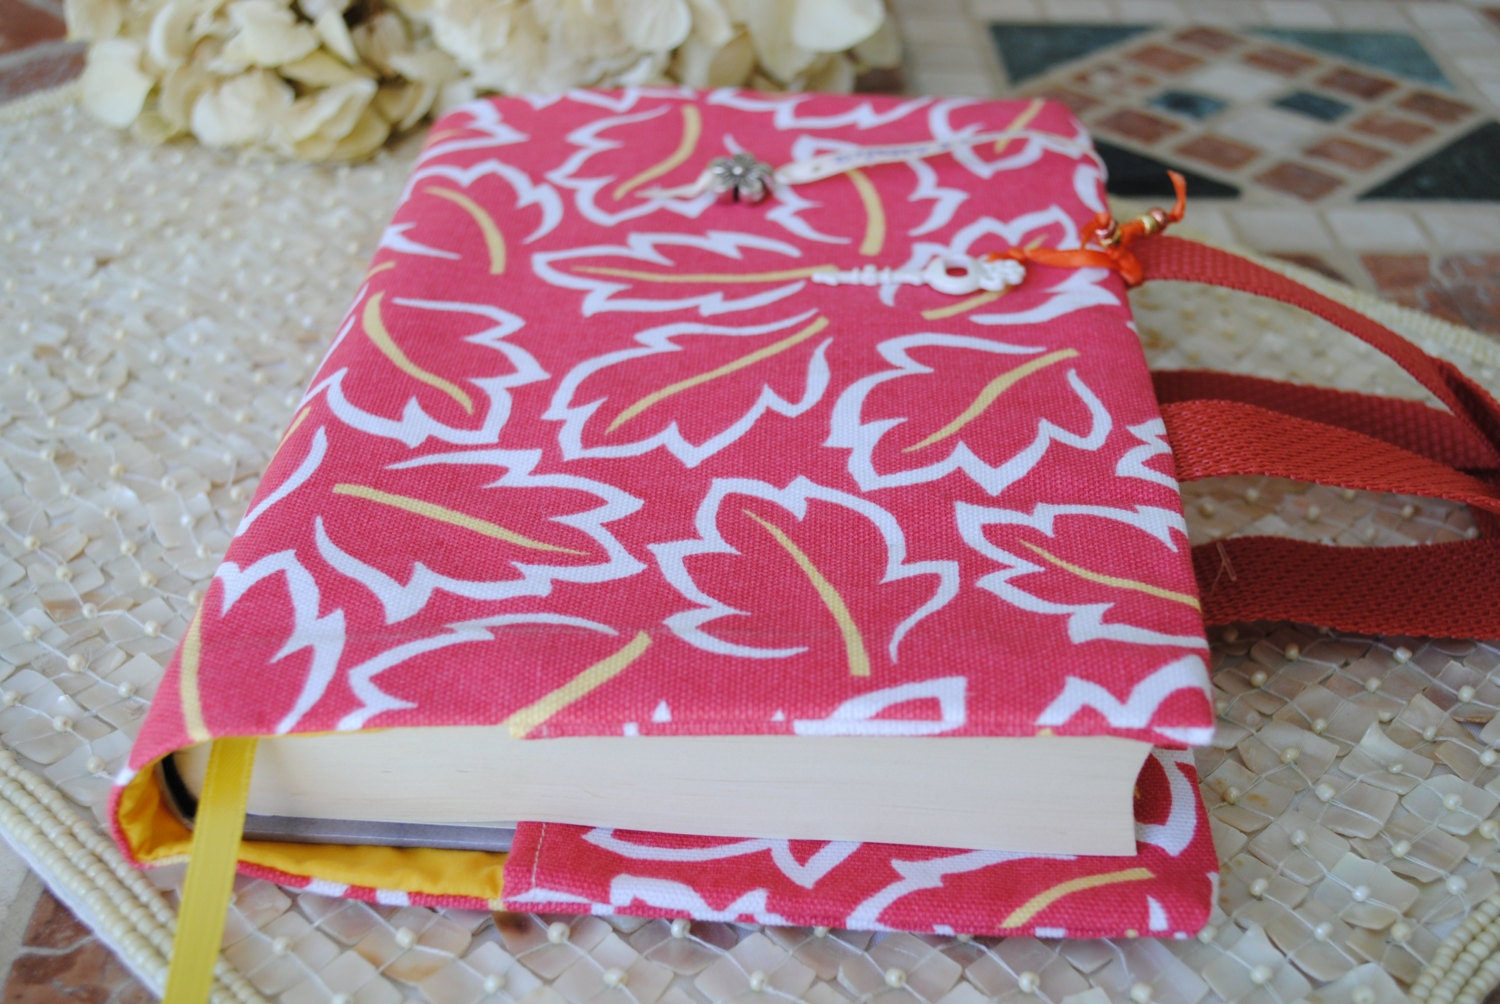 Fabric Book Covers With Handles : Fabric book cover with handles ristmas gift by maria natalia